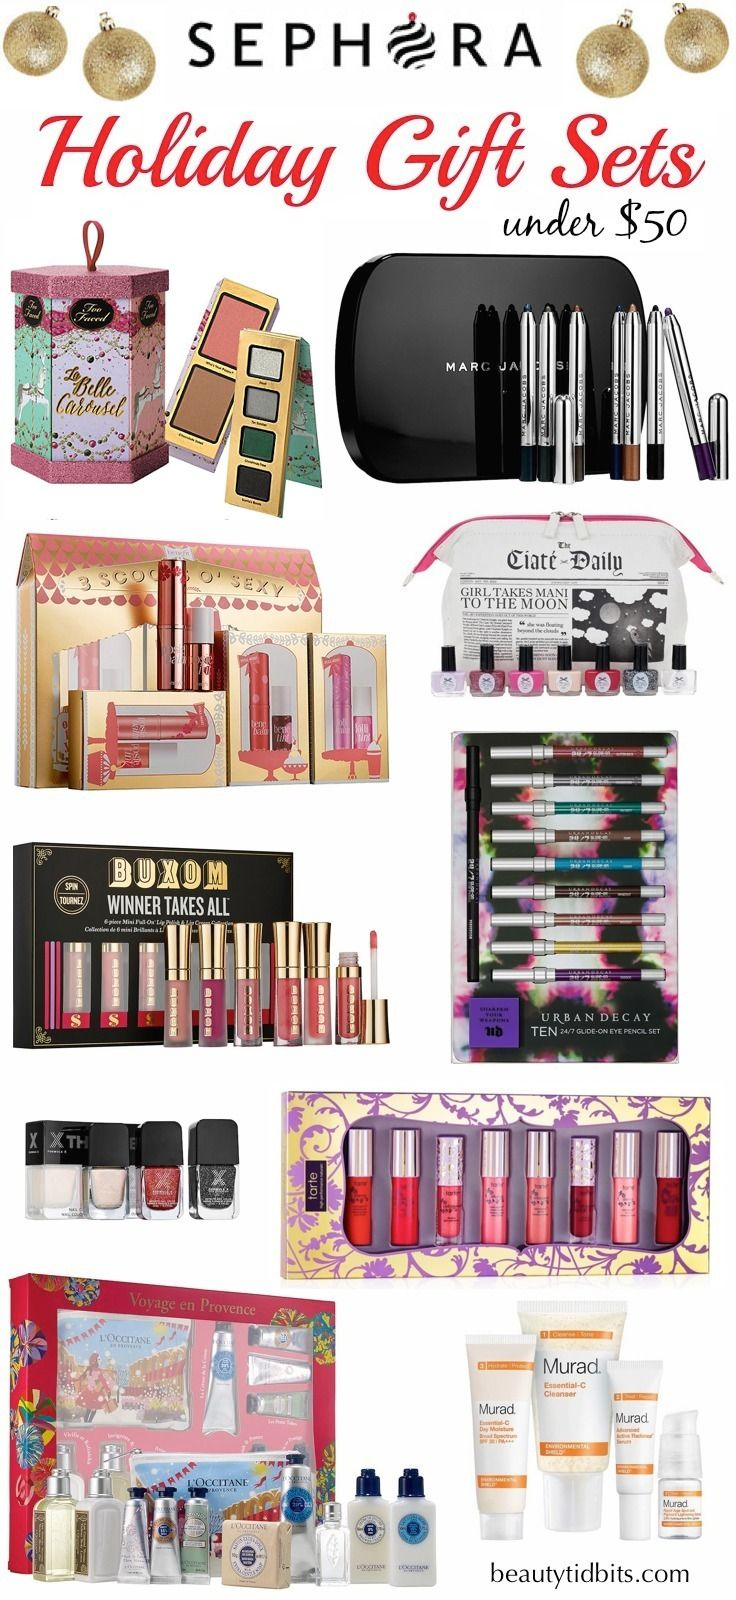 Best Sephora Holiday Gift Sets under $50 | Sephora, 50th and Holidays